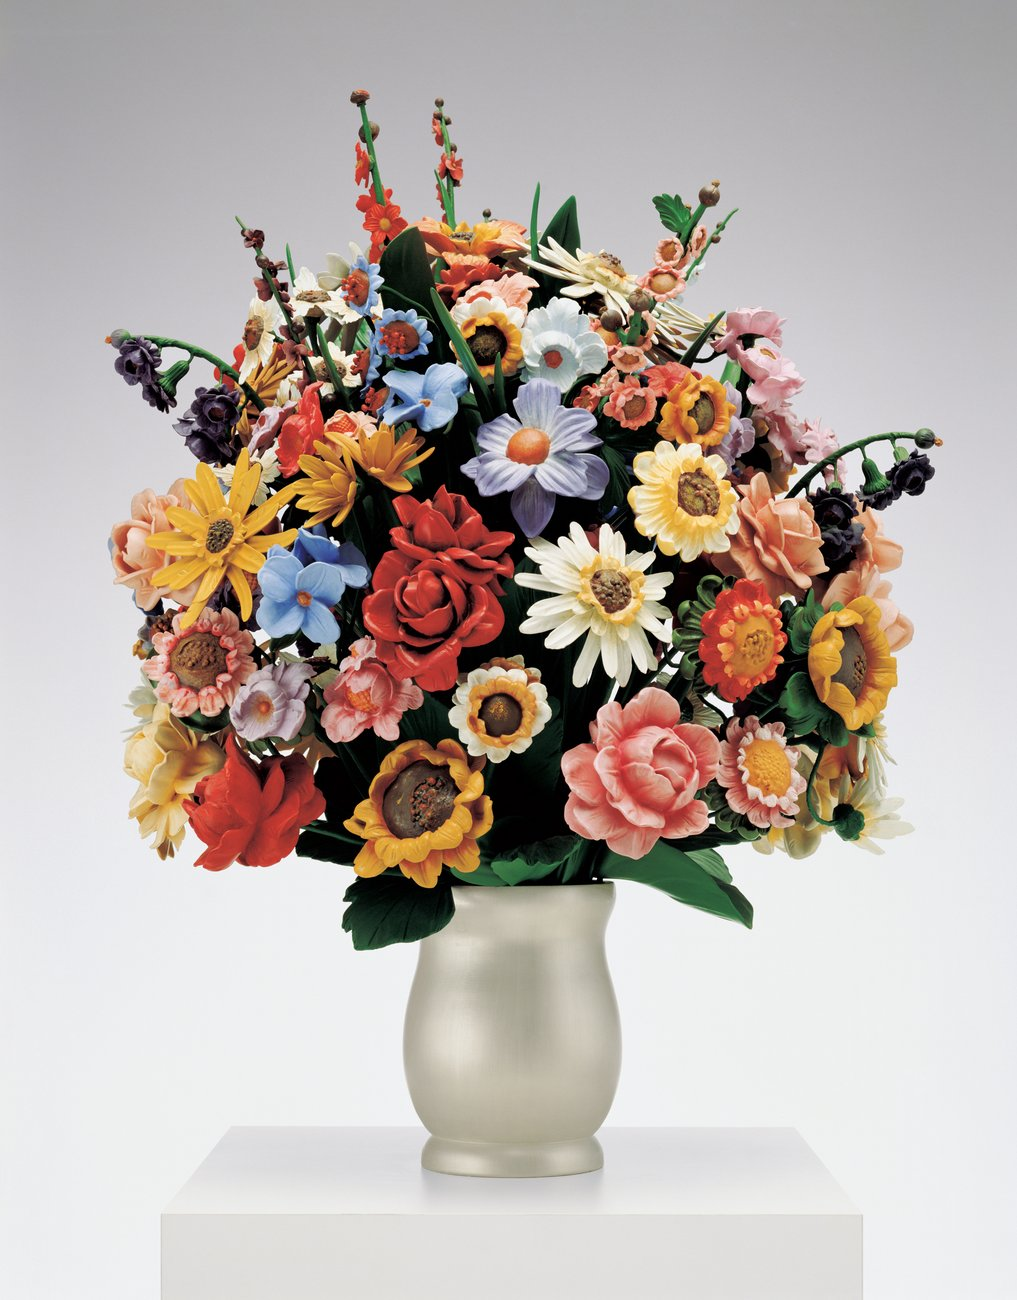 Artwork image, Jeff Koons, Large Vase of Flowers